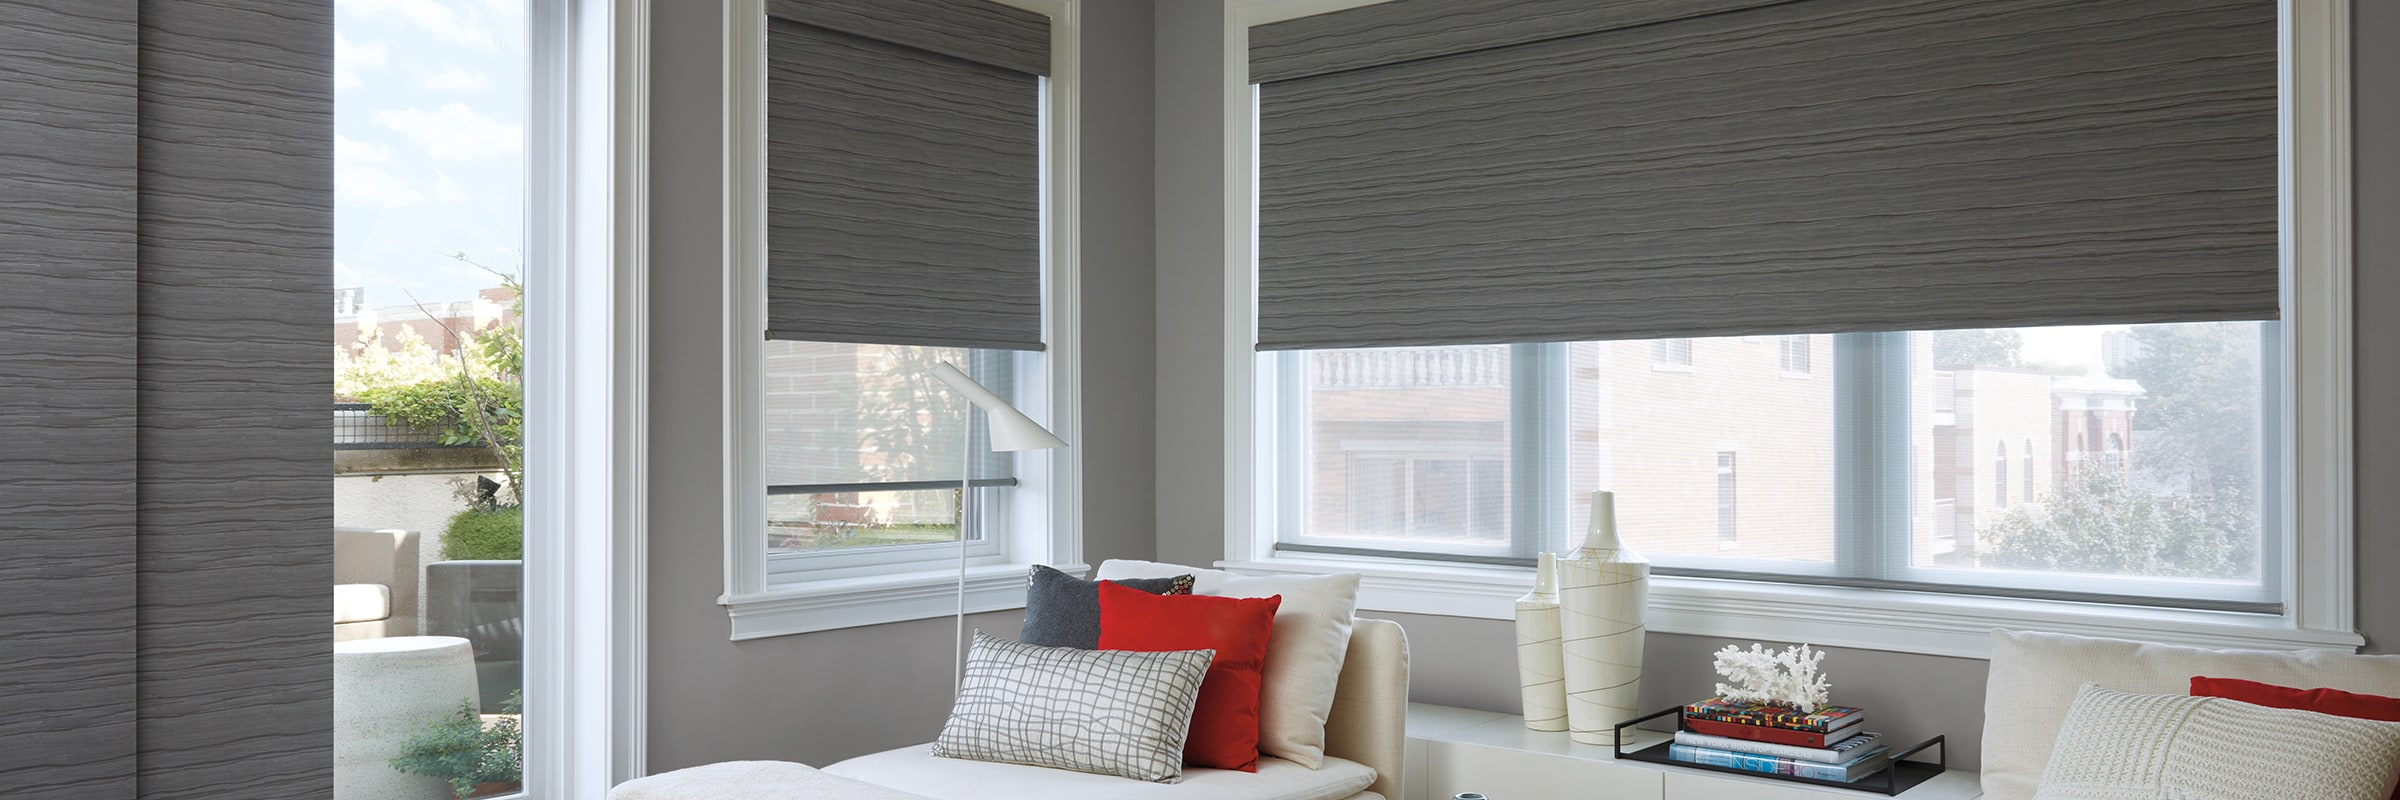 price ikea ideas vertical designs outdoor roller window car blind sunshade blinds singapore